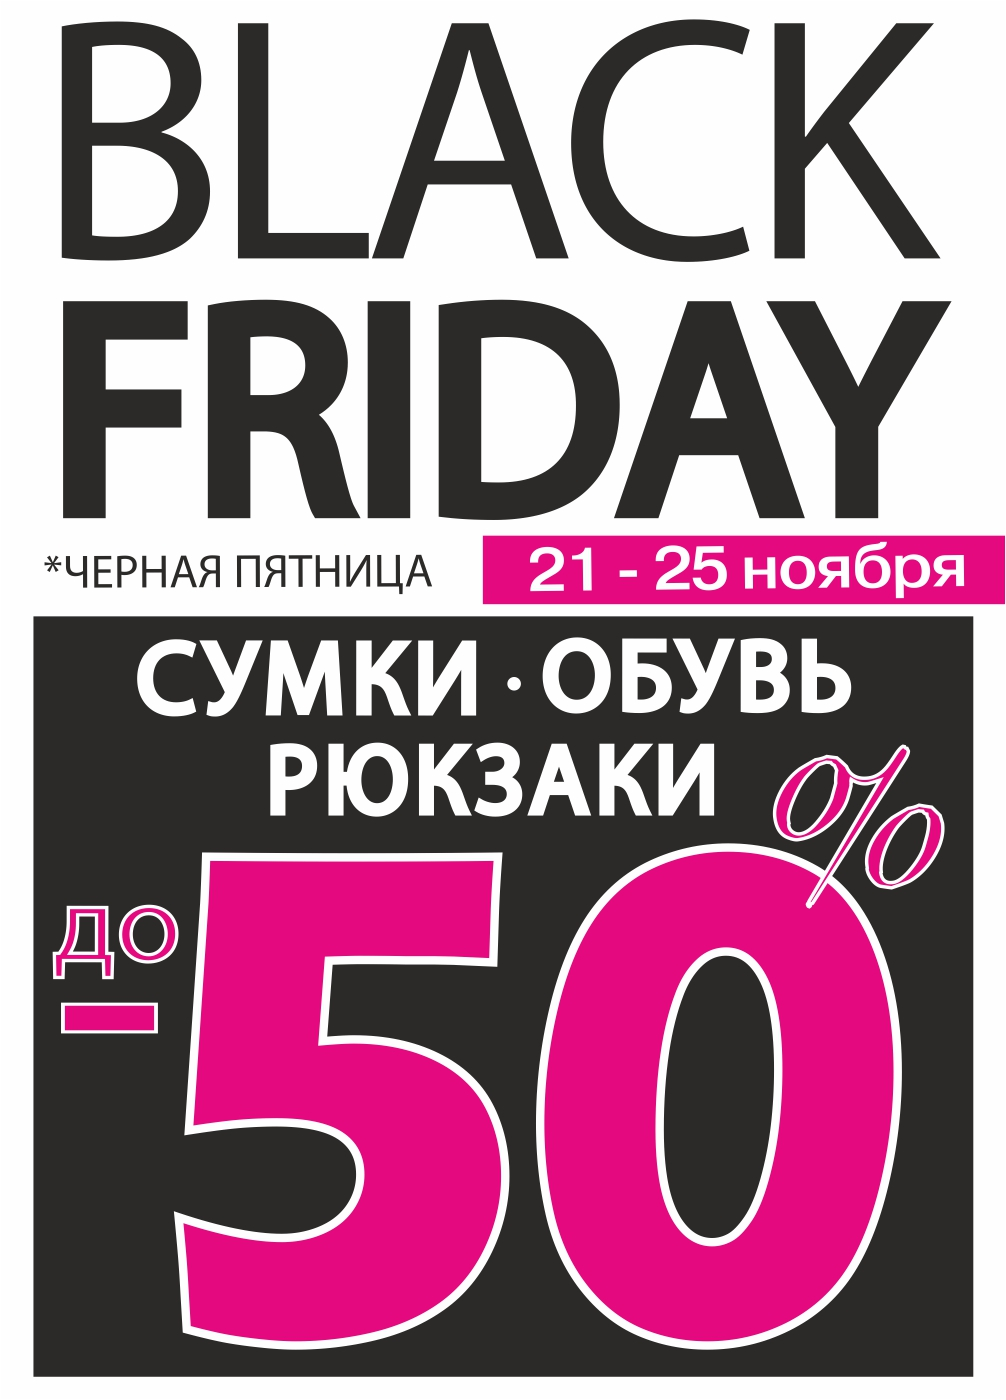 BLACK FRIDAY!